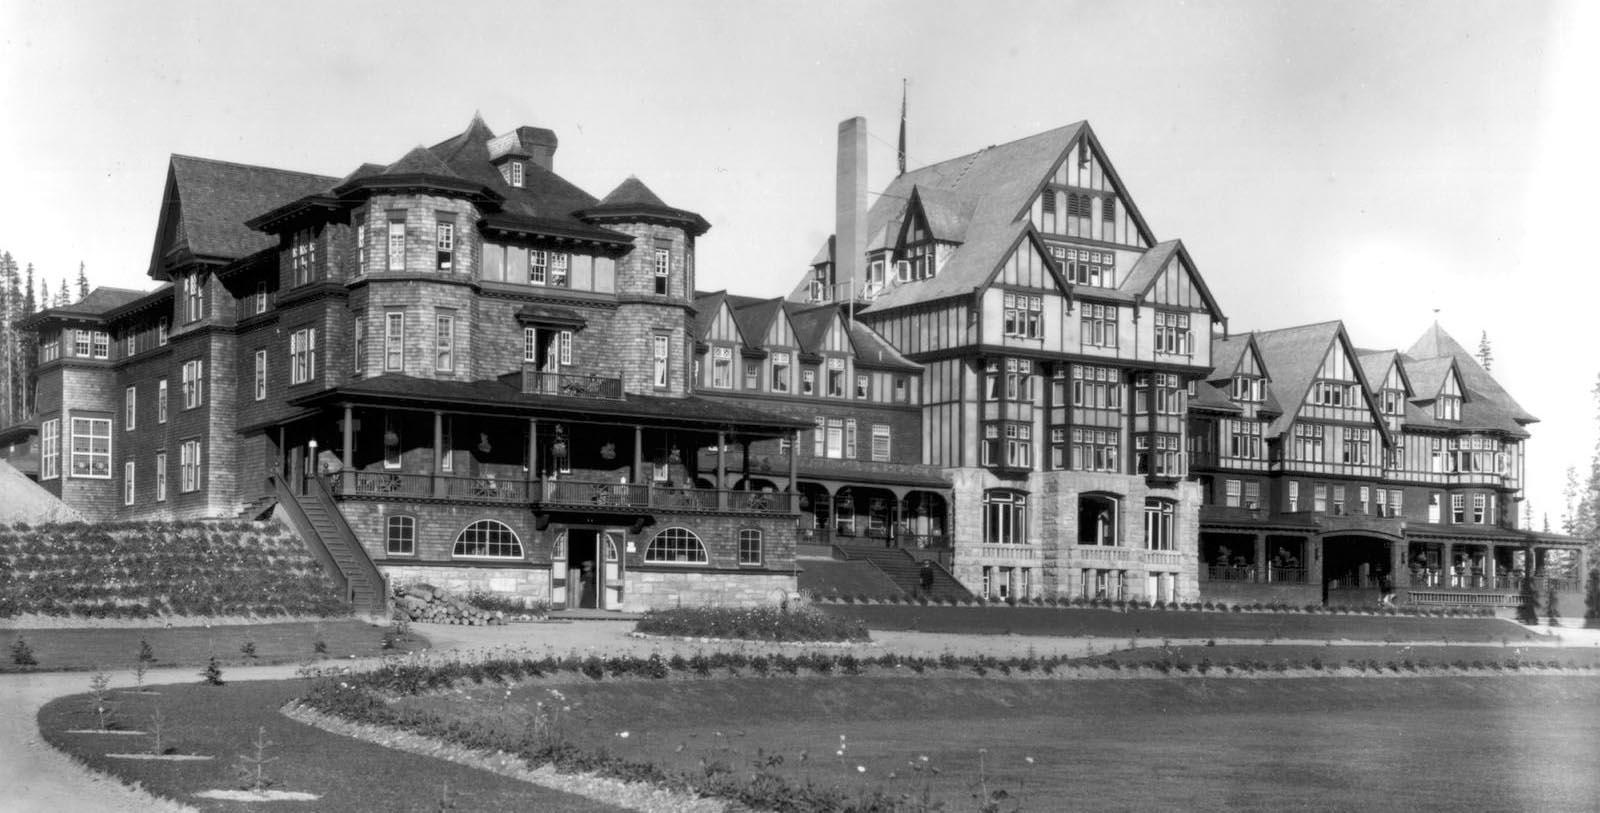 Image of historic exterior of the Fairmont Chateau Lake Louise in Alberta, Canada.